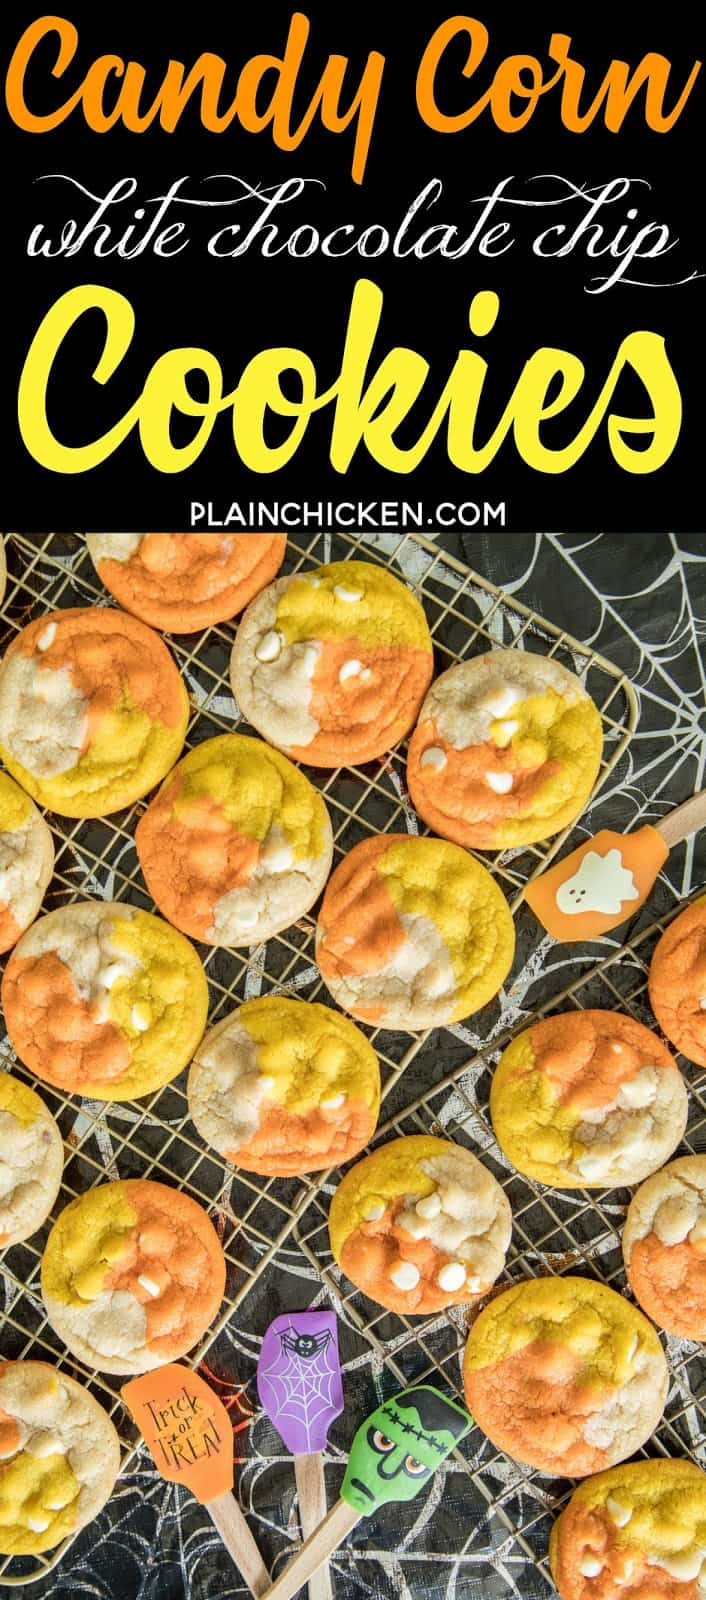 Candy Corn White Chocolate Chip Cookies - fun, festive Halloween themed cookies. THE BEST chocolate chip cookie EVER! I ate WAY too many of these!! Shortening, bread flour, salt, sugar, brown sugar, eggs, vanilla, white chocolate chips, gel food coloring. Can make cookies with regular chocolate chips. You can also skip the food coloring if you aren't making for halloween. Seriously THE BEST cookie recipe!!!